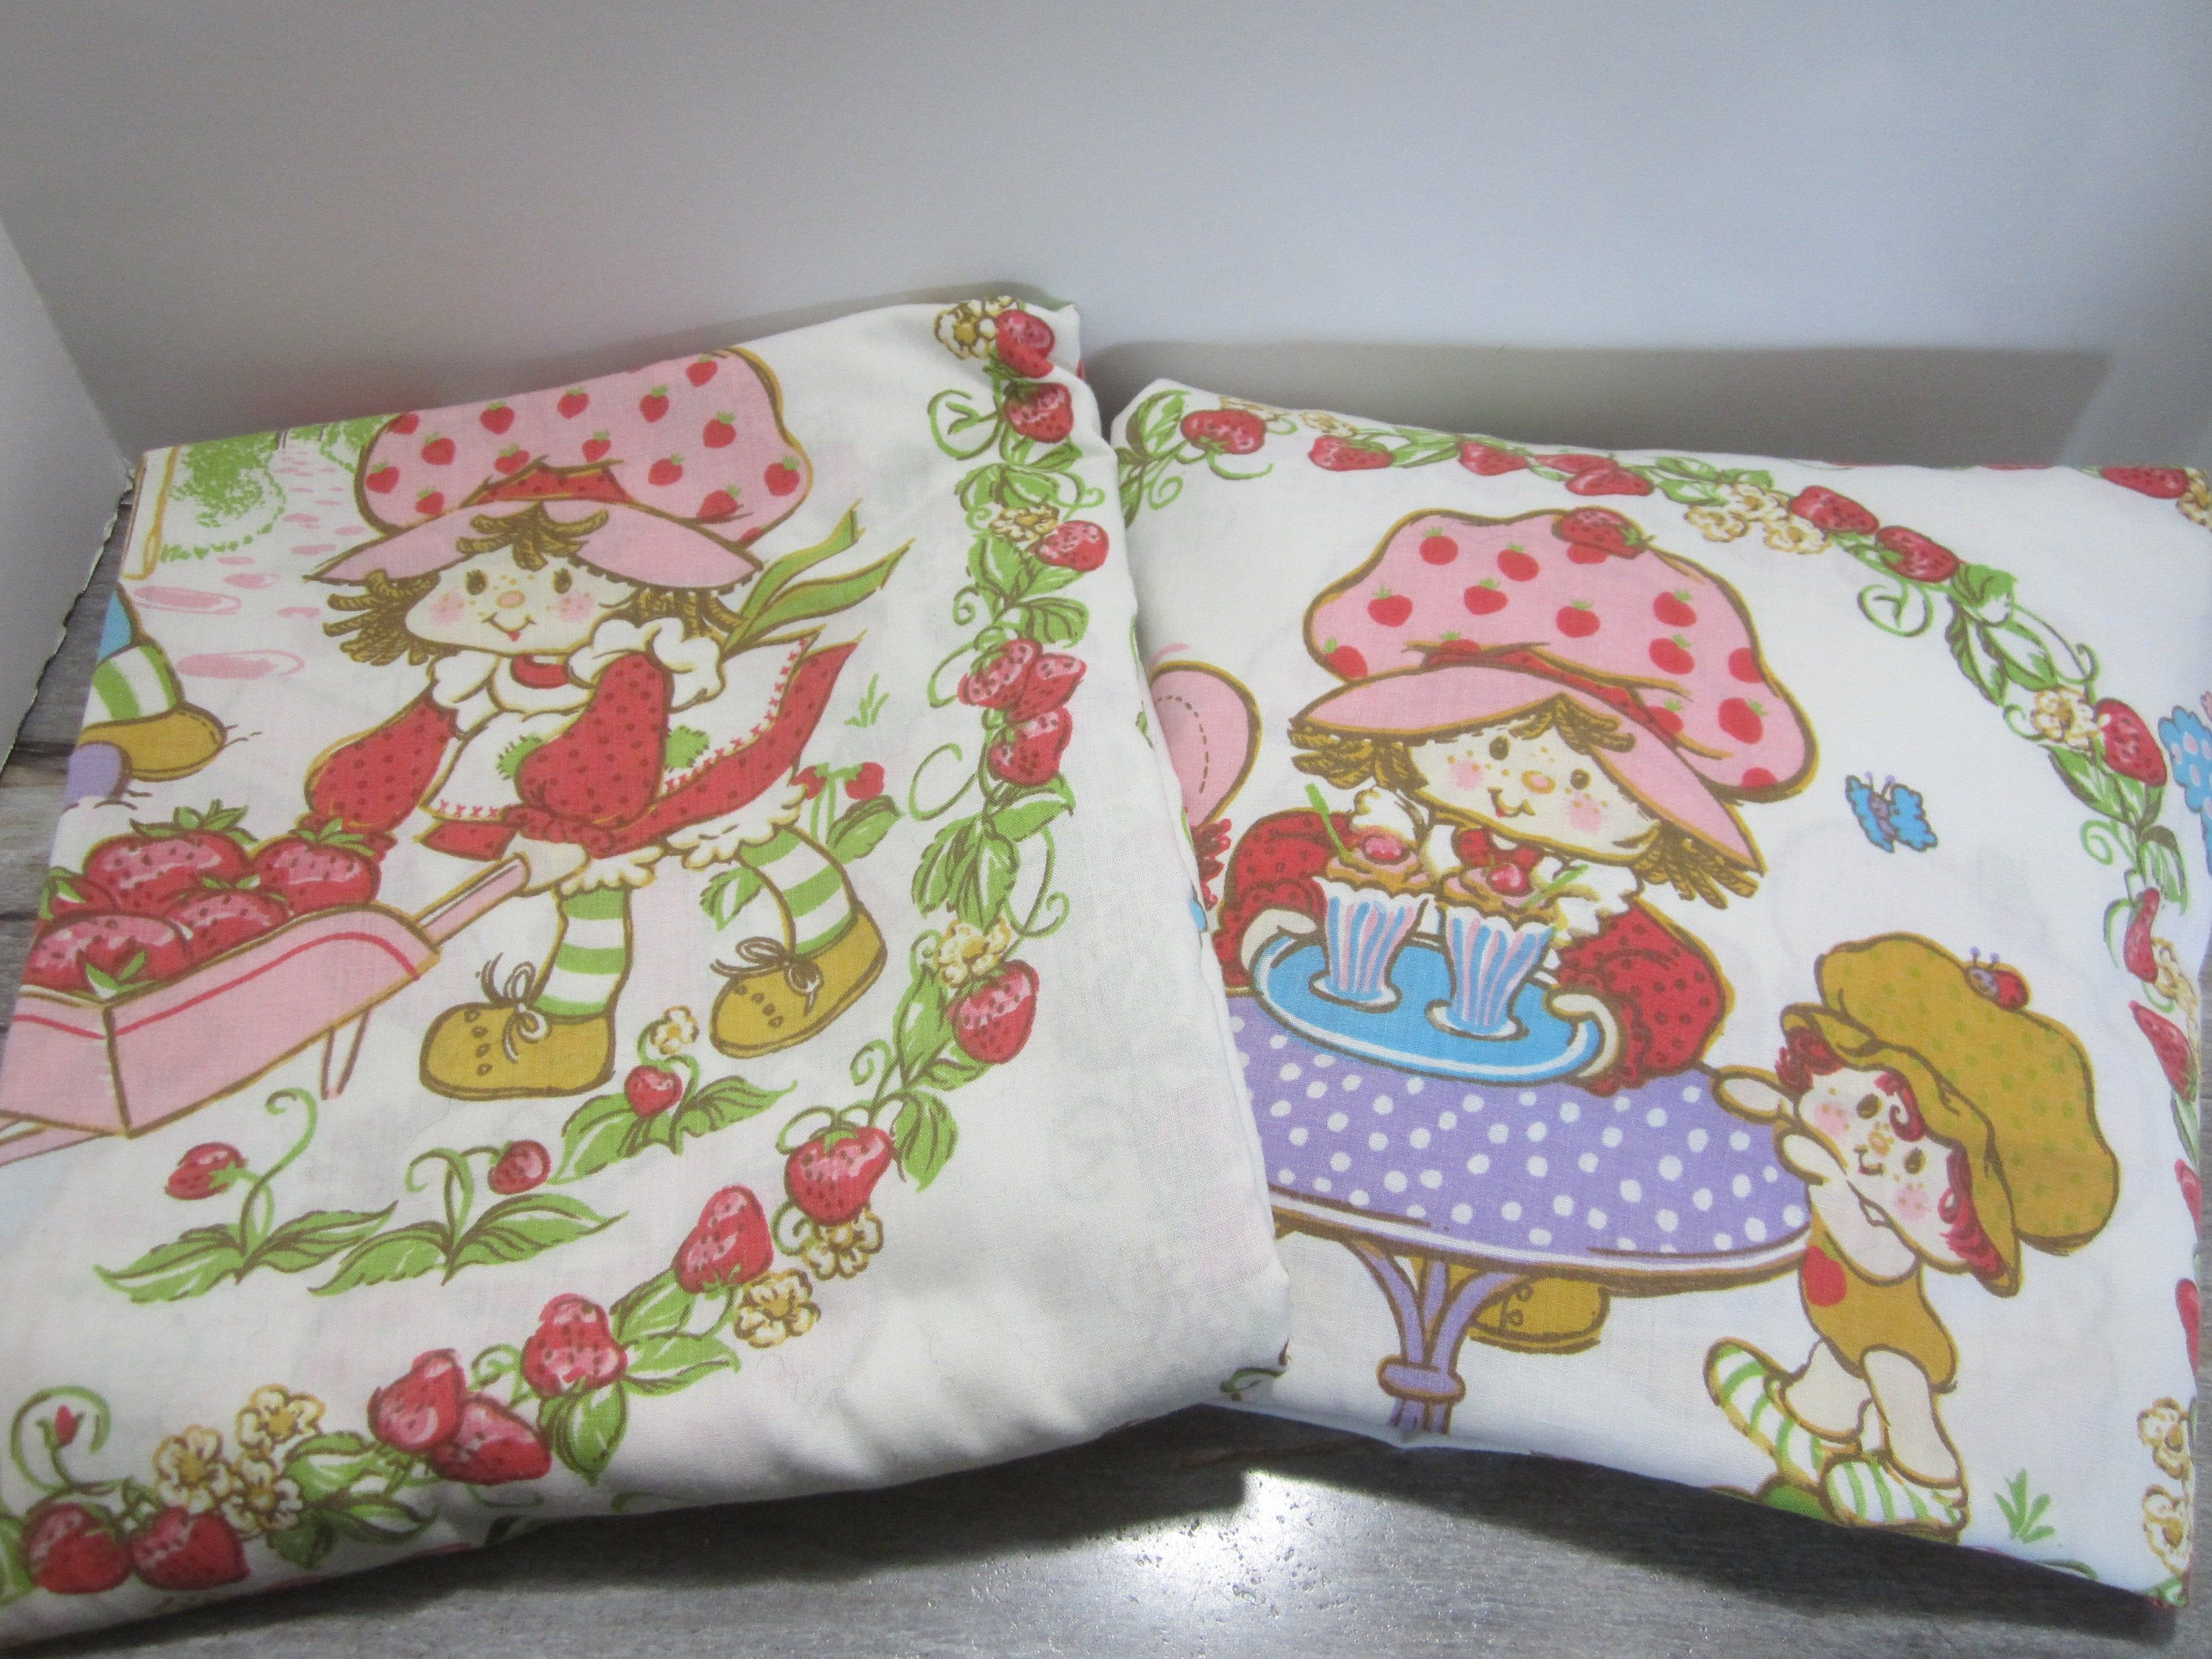 Vintage 1980's Strawberry Shortcake Twin Bed Sheets